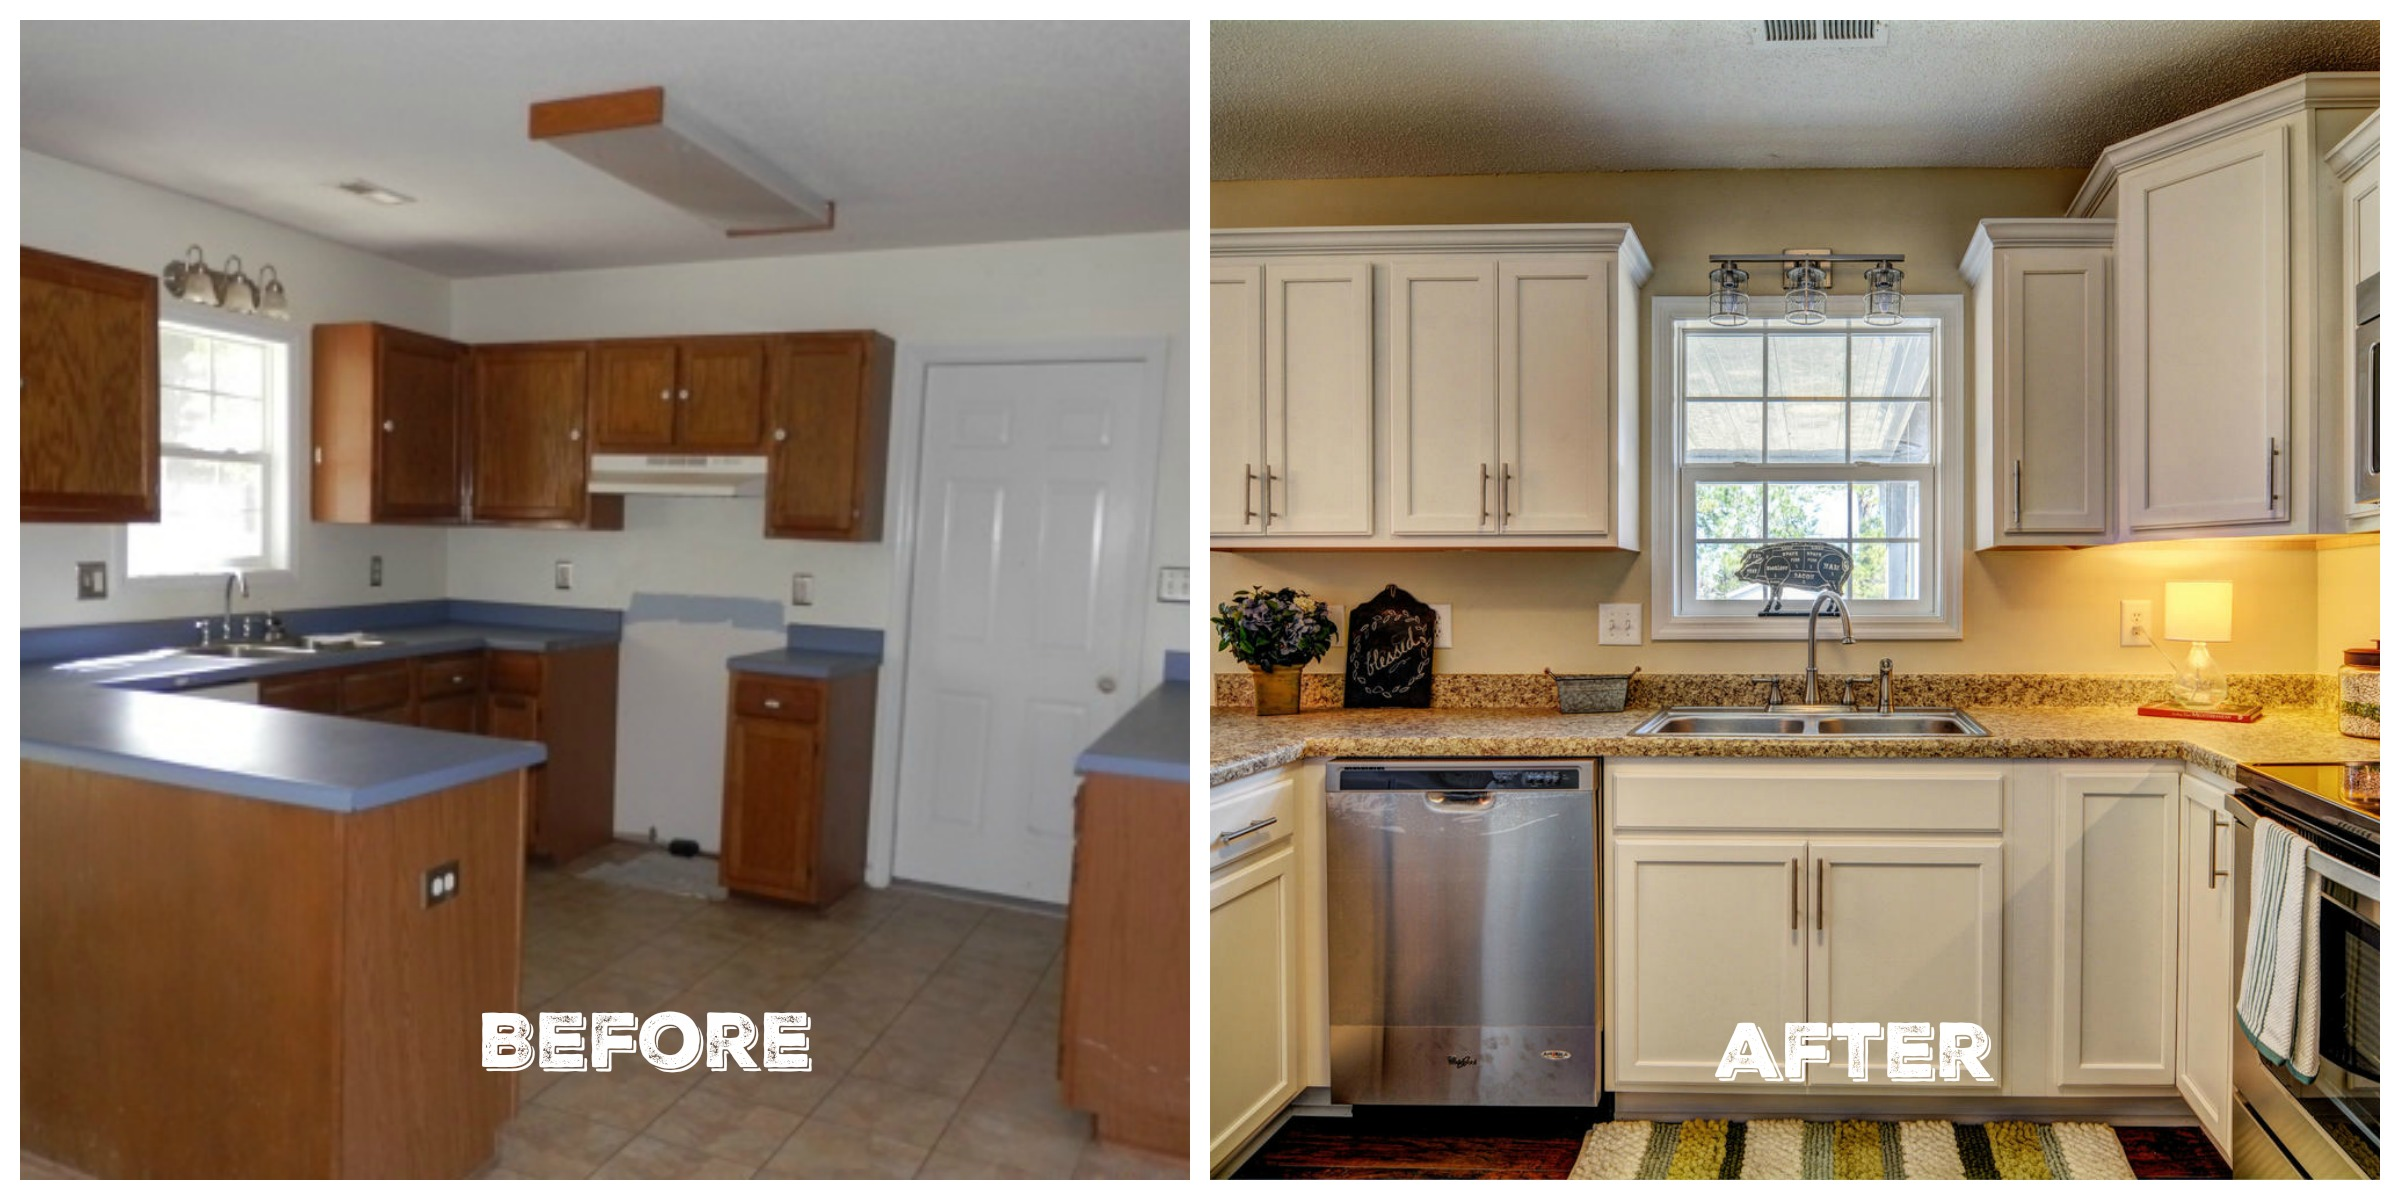 Before & After Kitchen | Flip House Reveal | The Everyday Home